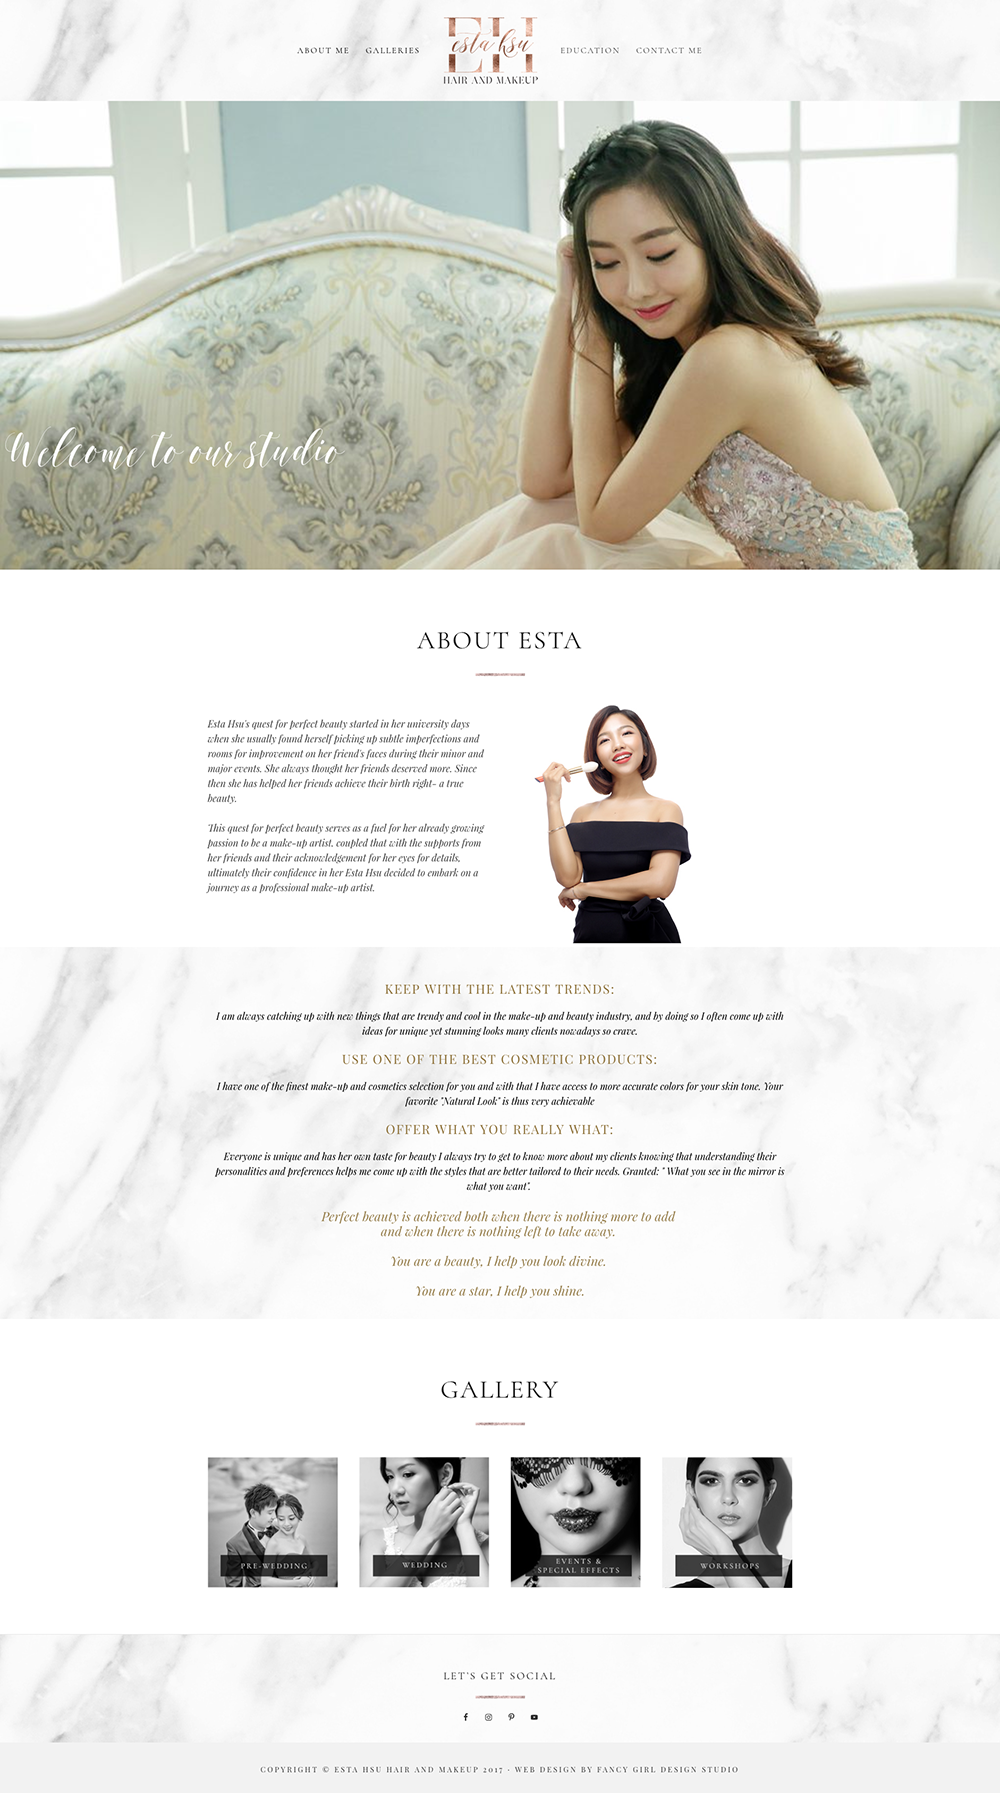 website design for Esta Hsu by Fancy Girl Design Studio